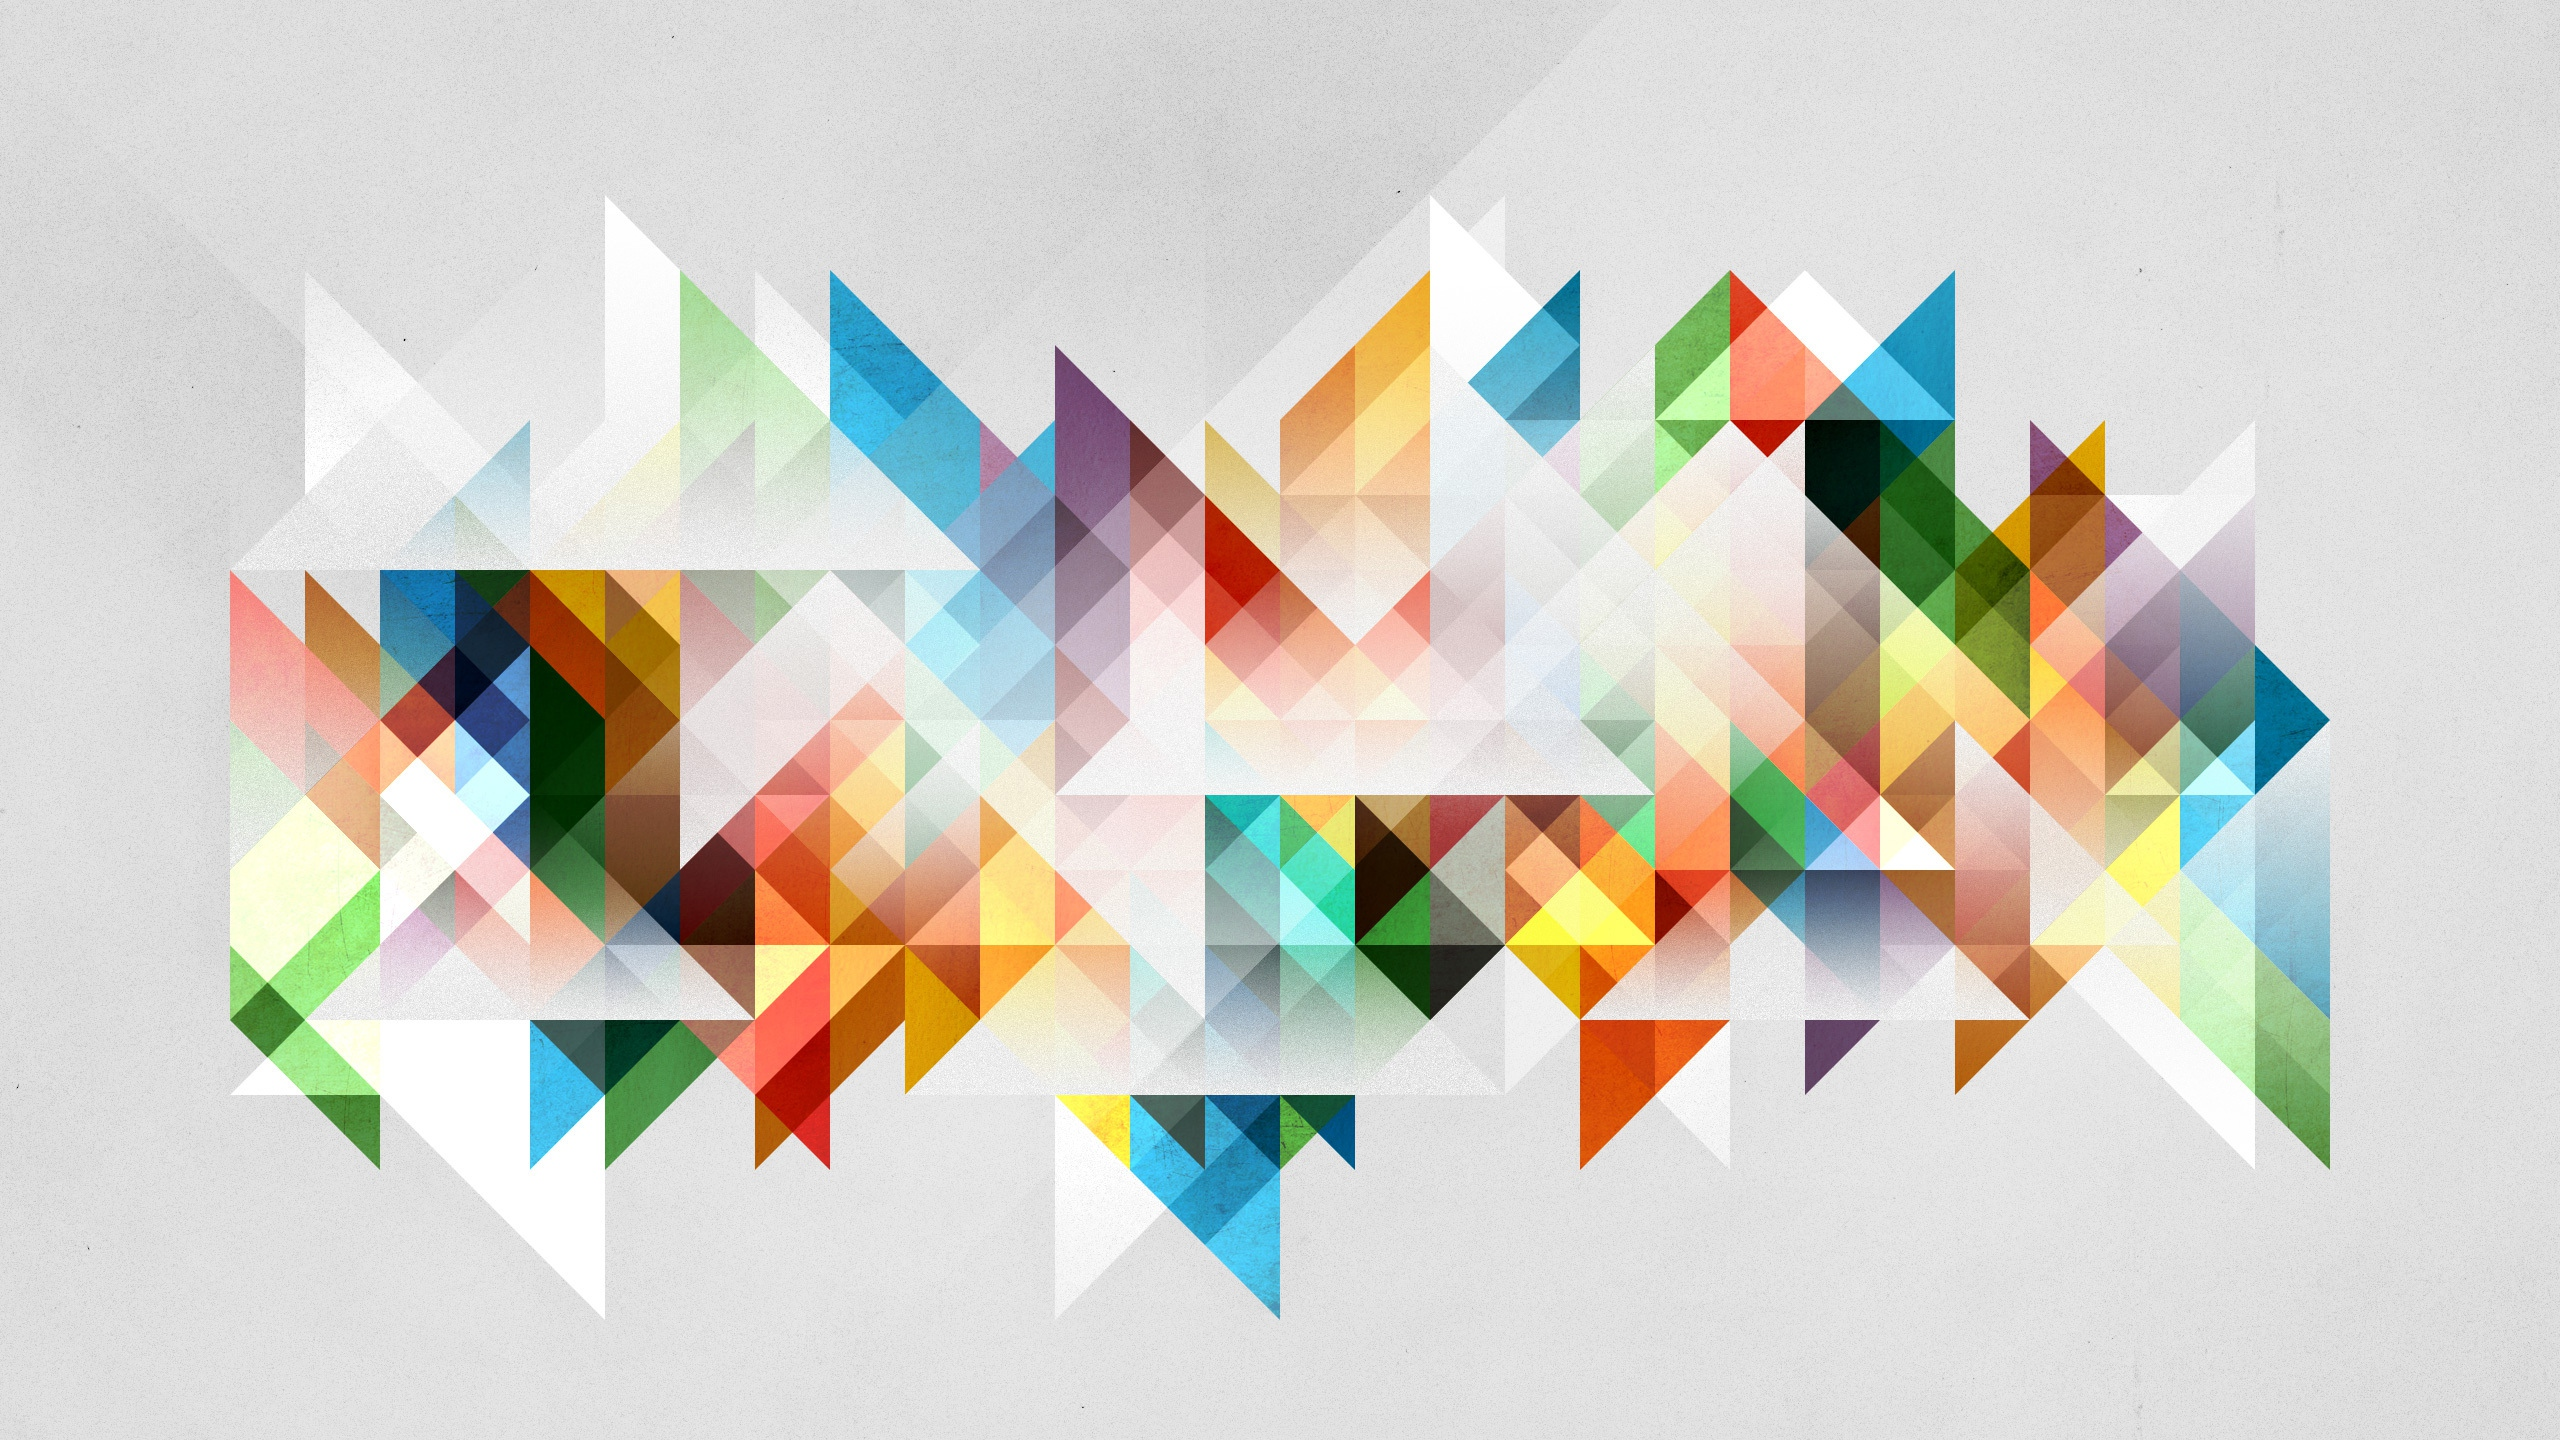 abstraction_geometry_shapes_colors_93400_2560x1440